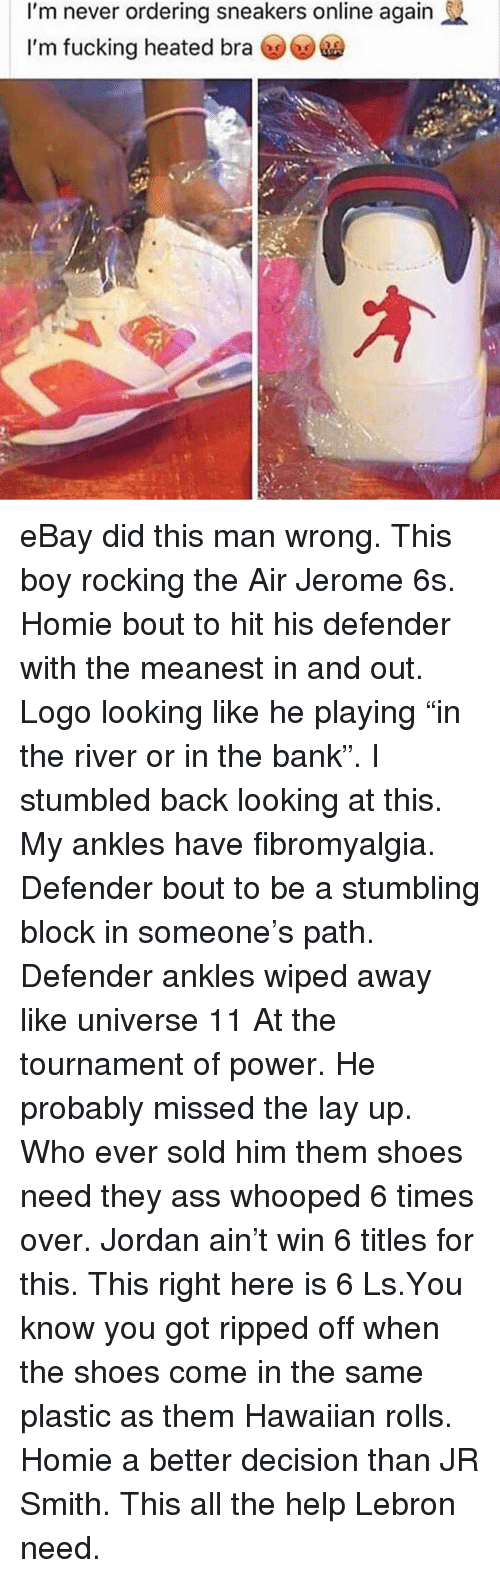 "Ass, eBay, and Fucking: I'm never ordering sneakers online again  I'm fucking heated bra eBay did this man wrong. This boy rocking the Air Jerome 6s. Homie bout to hit his defender with the meanest in and out. Logo looking like he playing ""in the river or in the bank"". I stumbled back looking at this. My ankles have fibromyalgia. Defender bout to be a stumbling block in someone's path. Defender ankles wiped away like universe 11 At the tournament of power. He probably missed the lay up. Who ever sold him them shoes need they ass whooped 6 times over. Jordan ain't win 6 titles for this. This right here is 6 Ls.You know you got ripped off when the shoes come in the same plastic as them Hawaiian rolls. Homie a better decision than JR Smith. This all the help Lebron need."